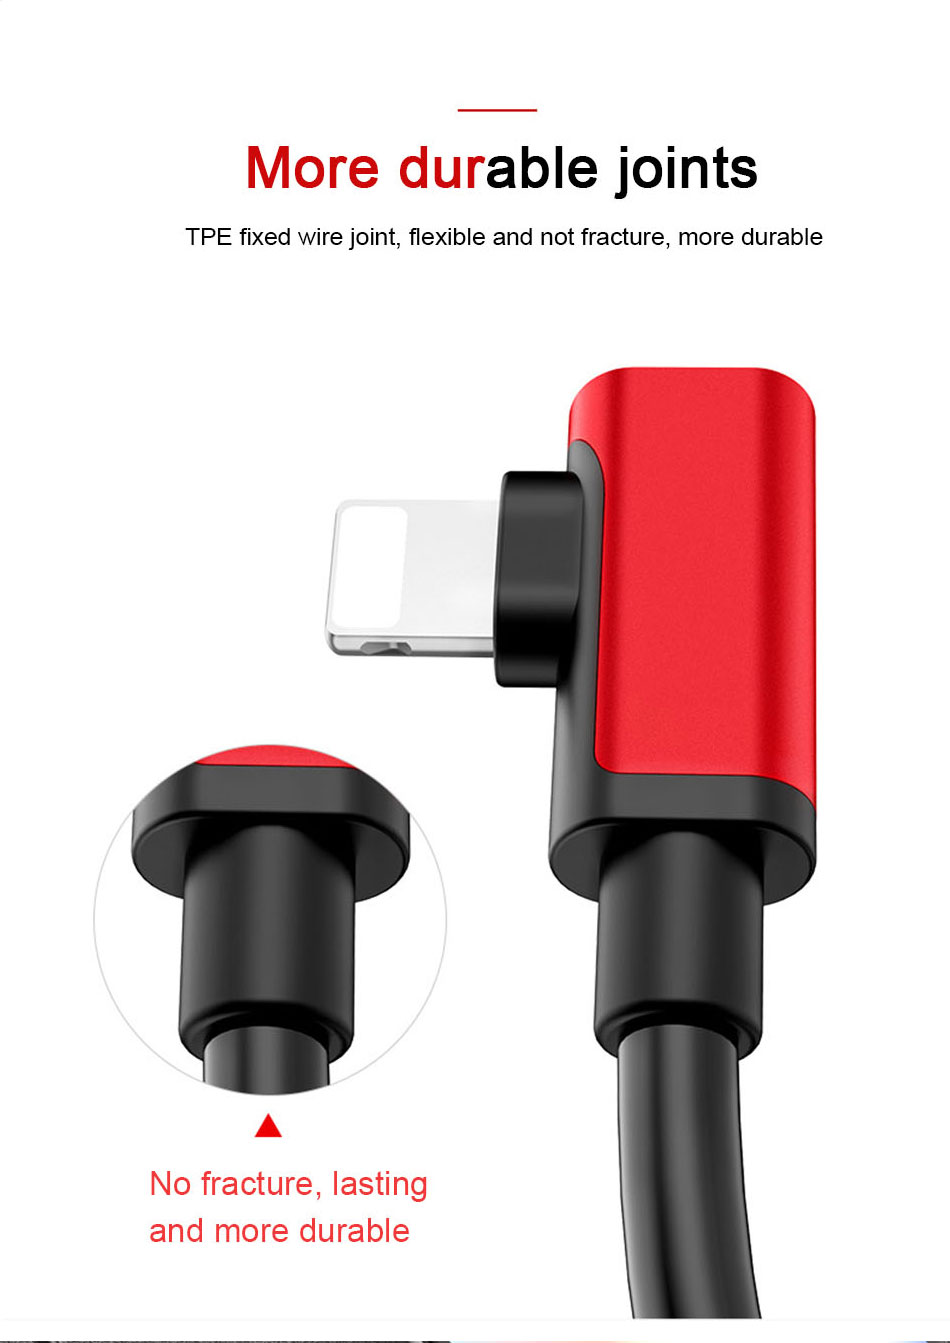 !ACCEZZ 2 3 IN 1 Dual Lighting Charging&Audio&Calling Headphone Adapter For iphone X 8 7 Plus Jack to Earphone AUX Splitter Cables (8)